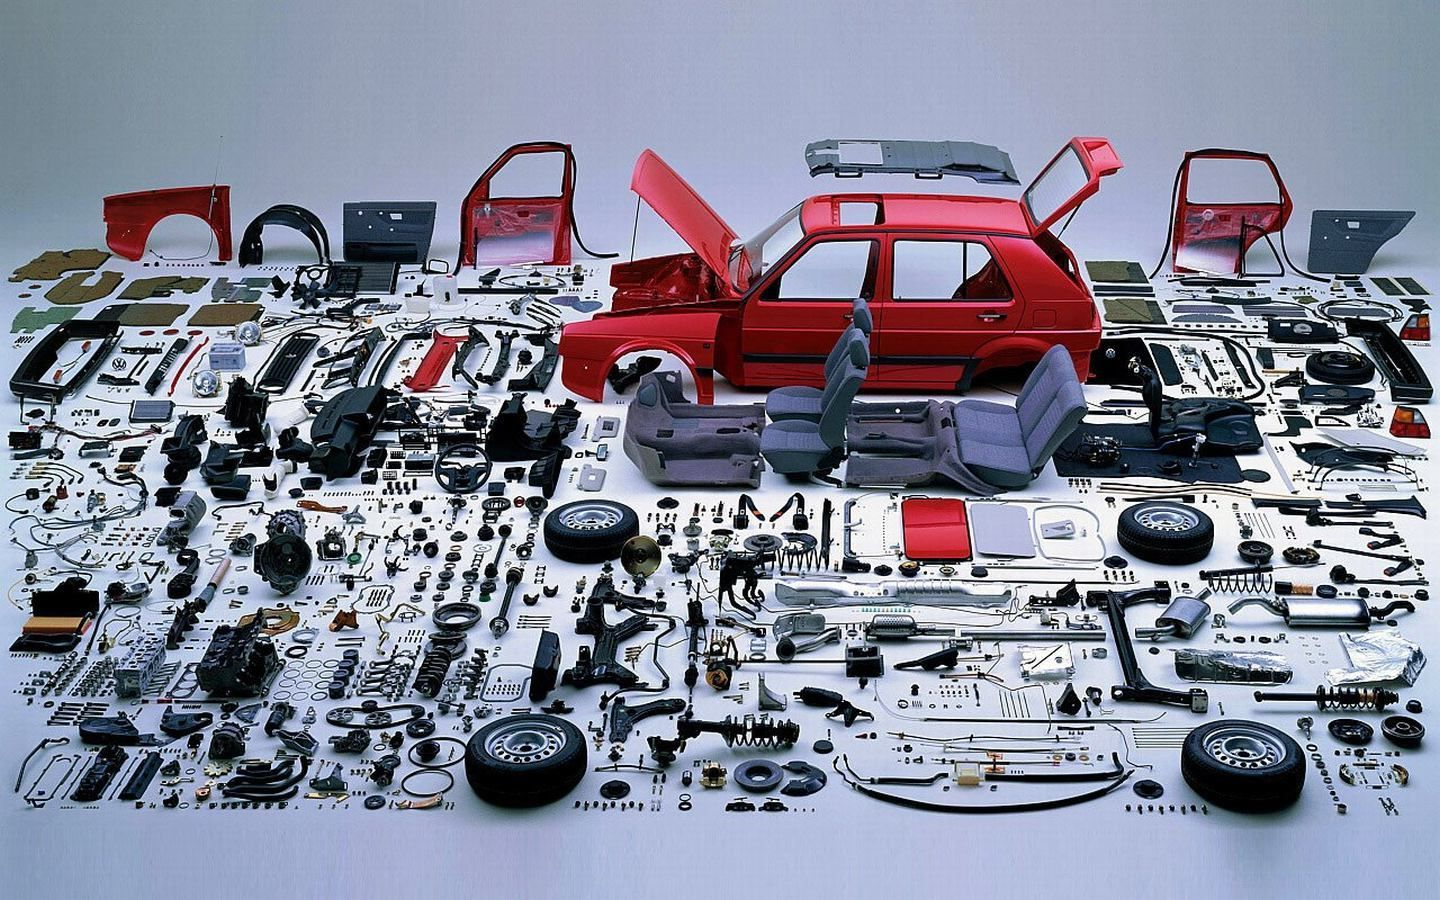 Auto Vehicle Parts >> A fully disassembled VW. | Pinterest | Volkswagen, Vw and Exploded view